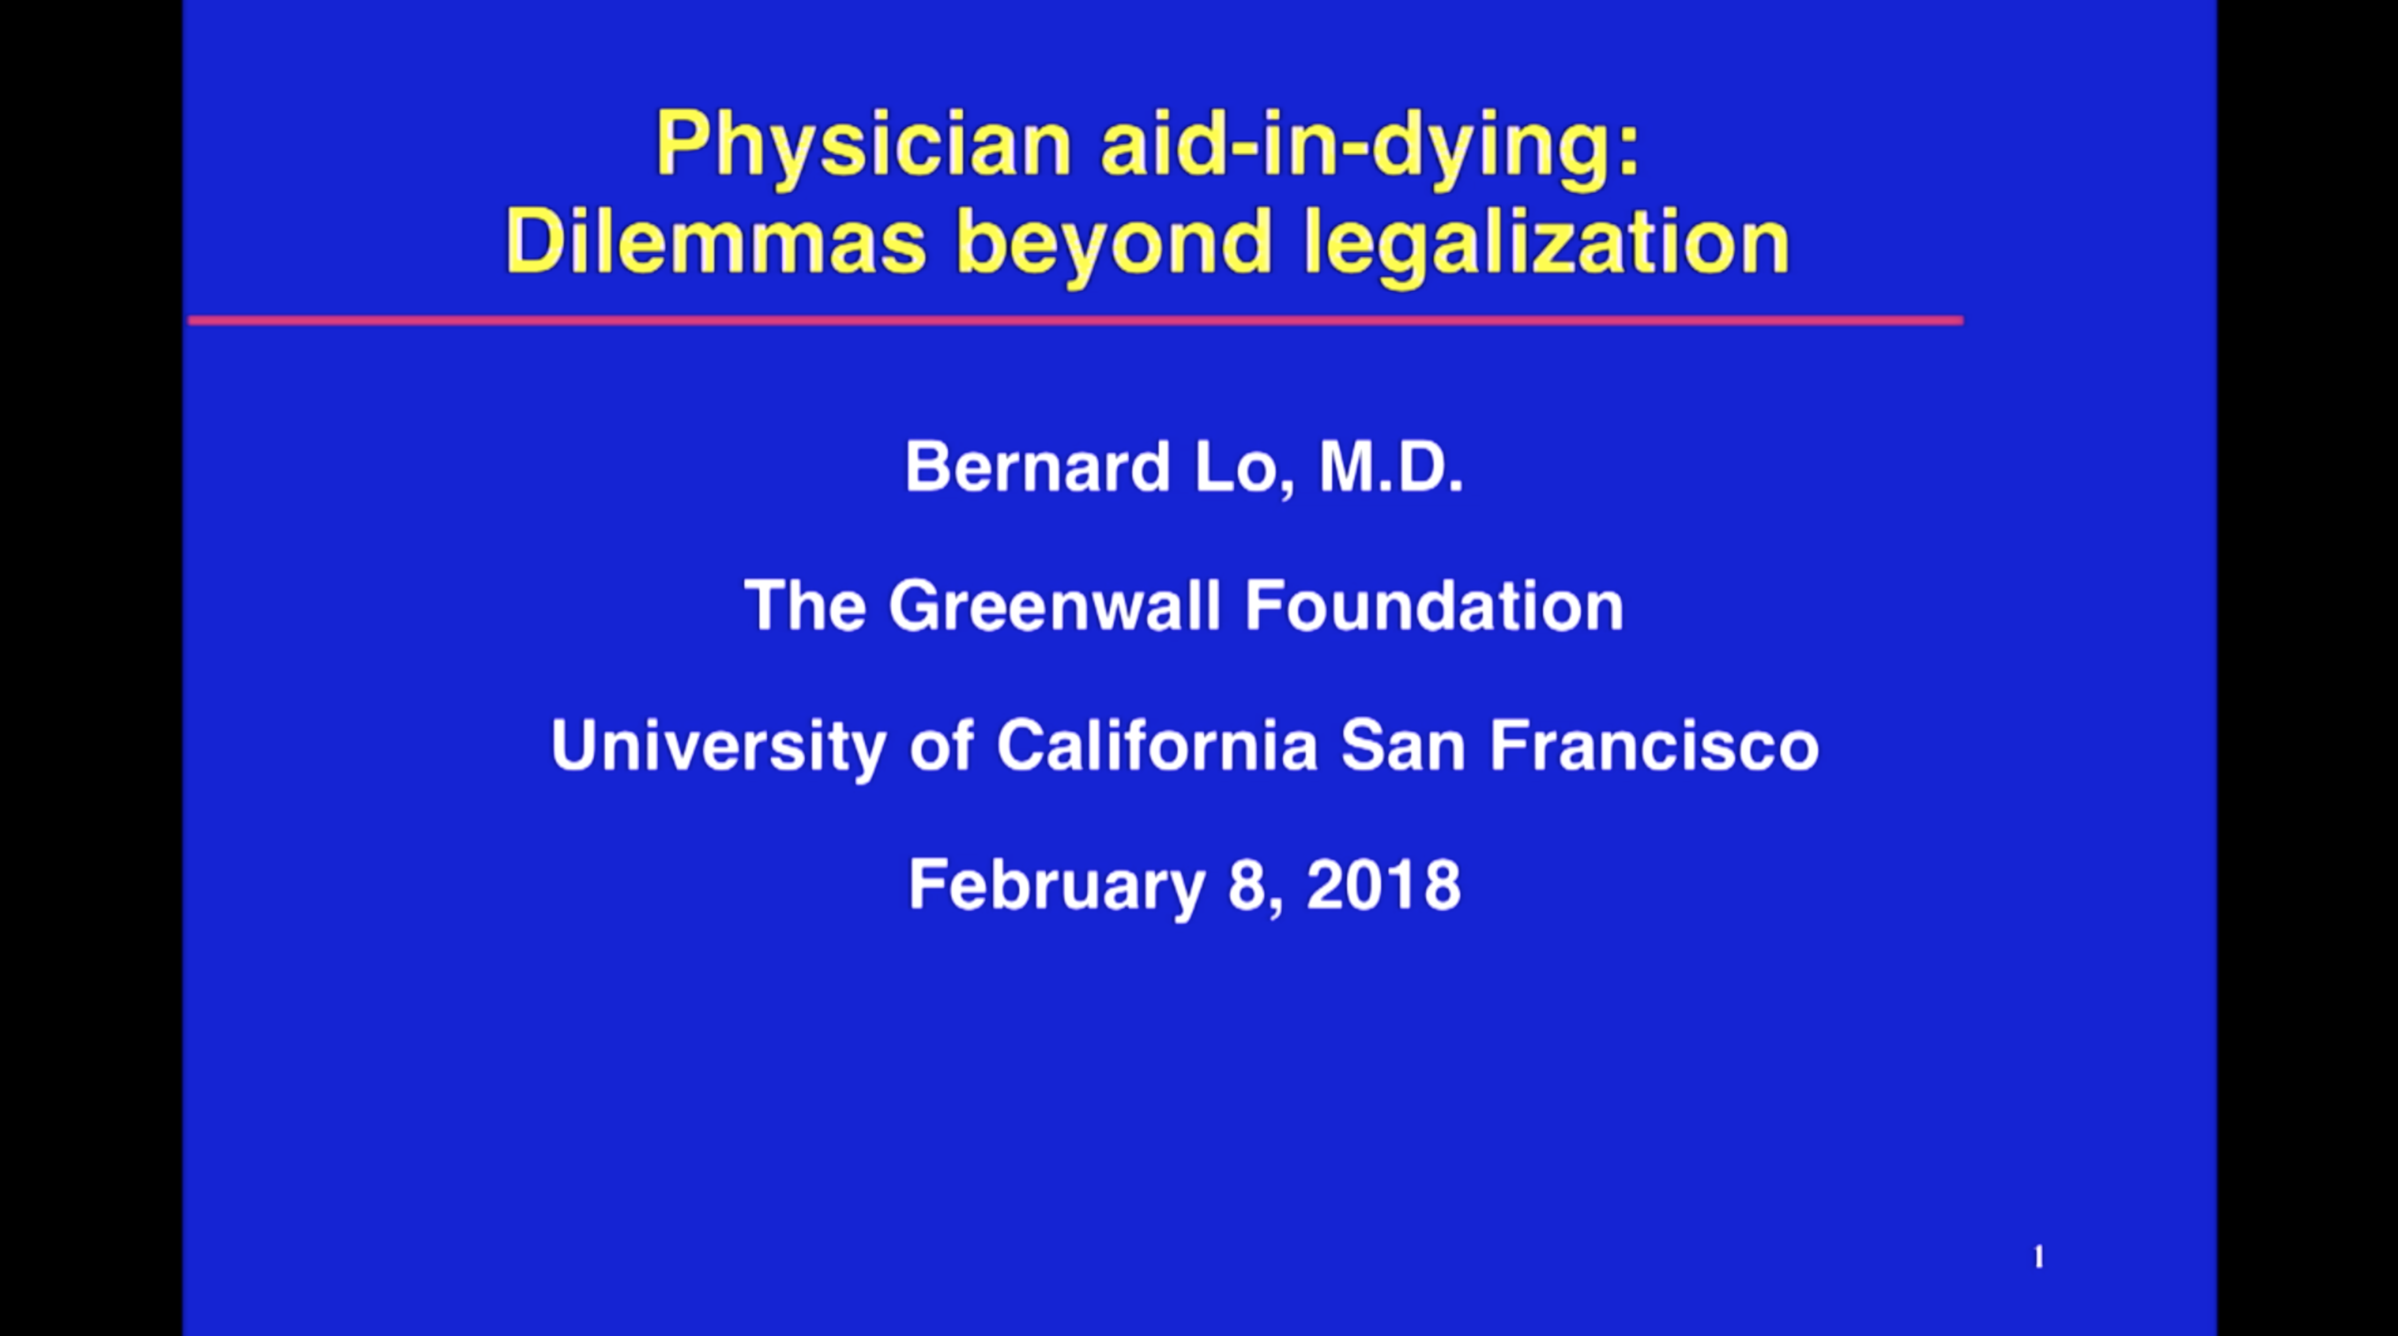 Click to play:  Bernard Lo on Clinical Dilemmas about Physician Aid-in-Dying